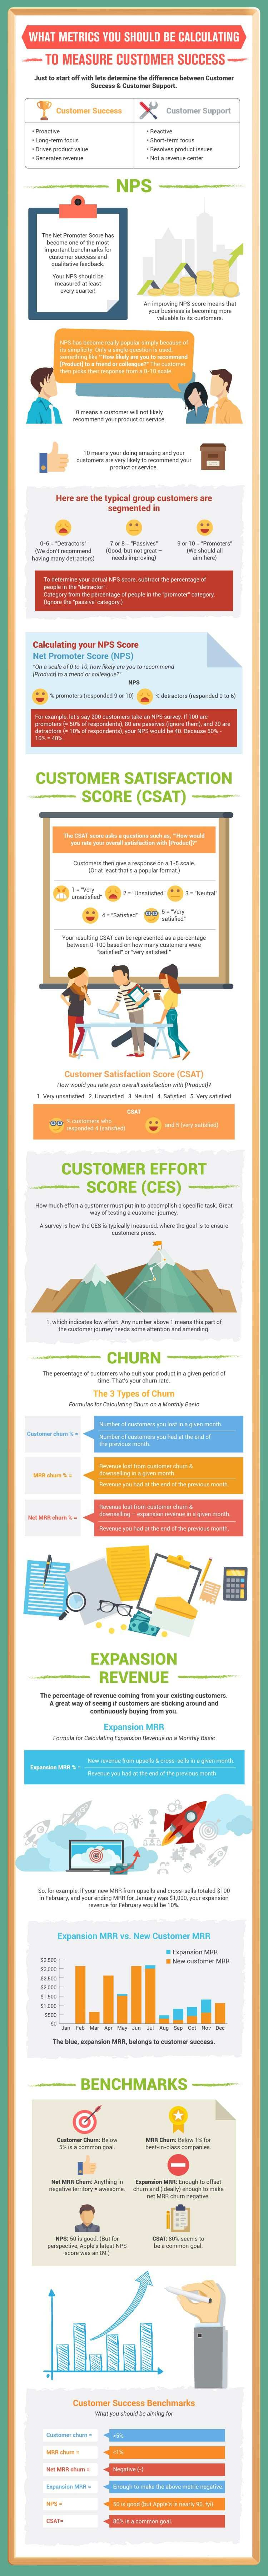 customer-success-metrics